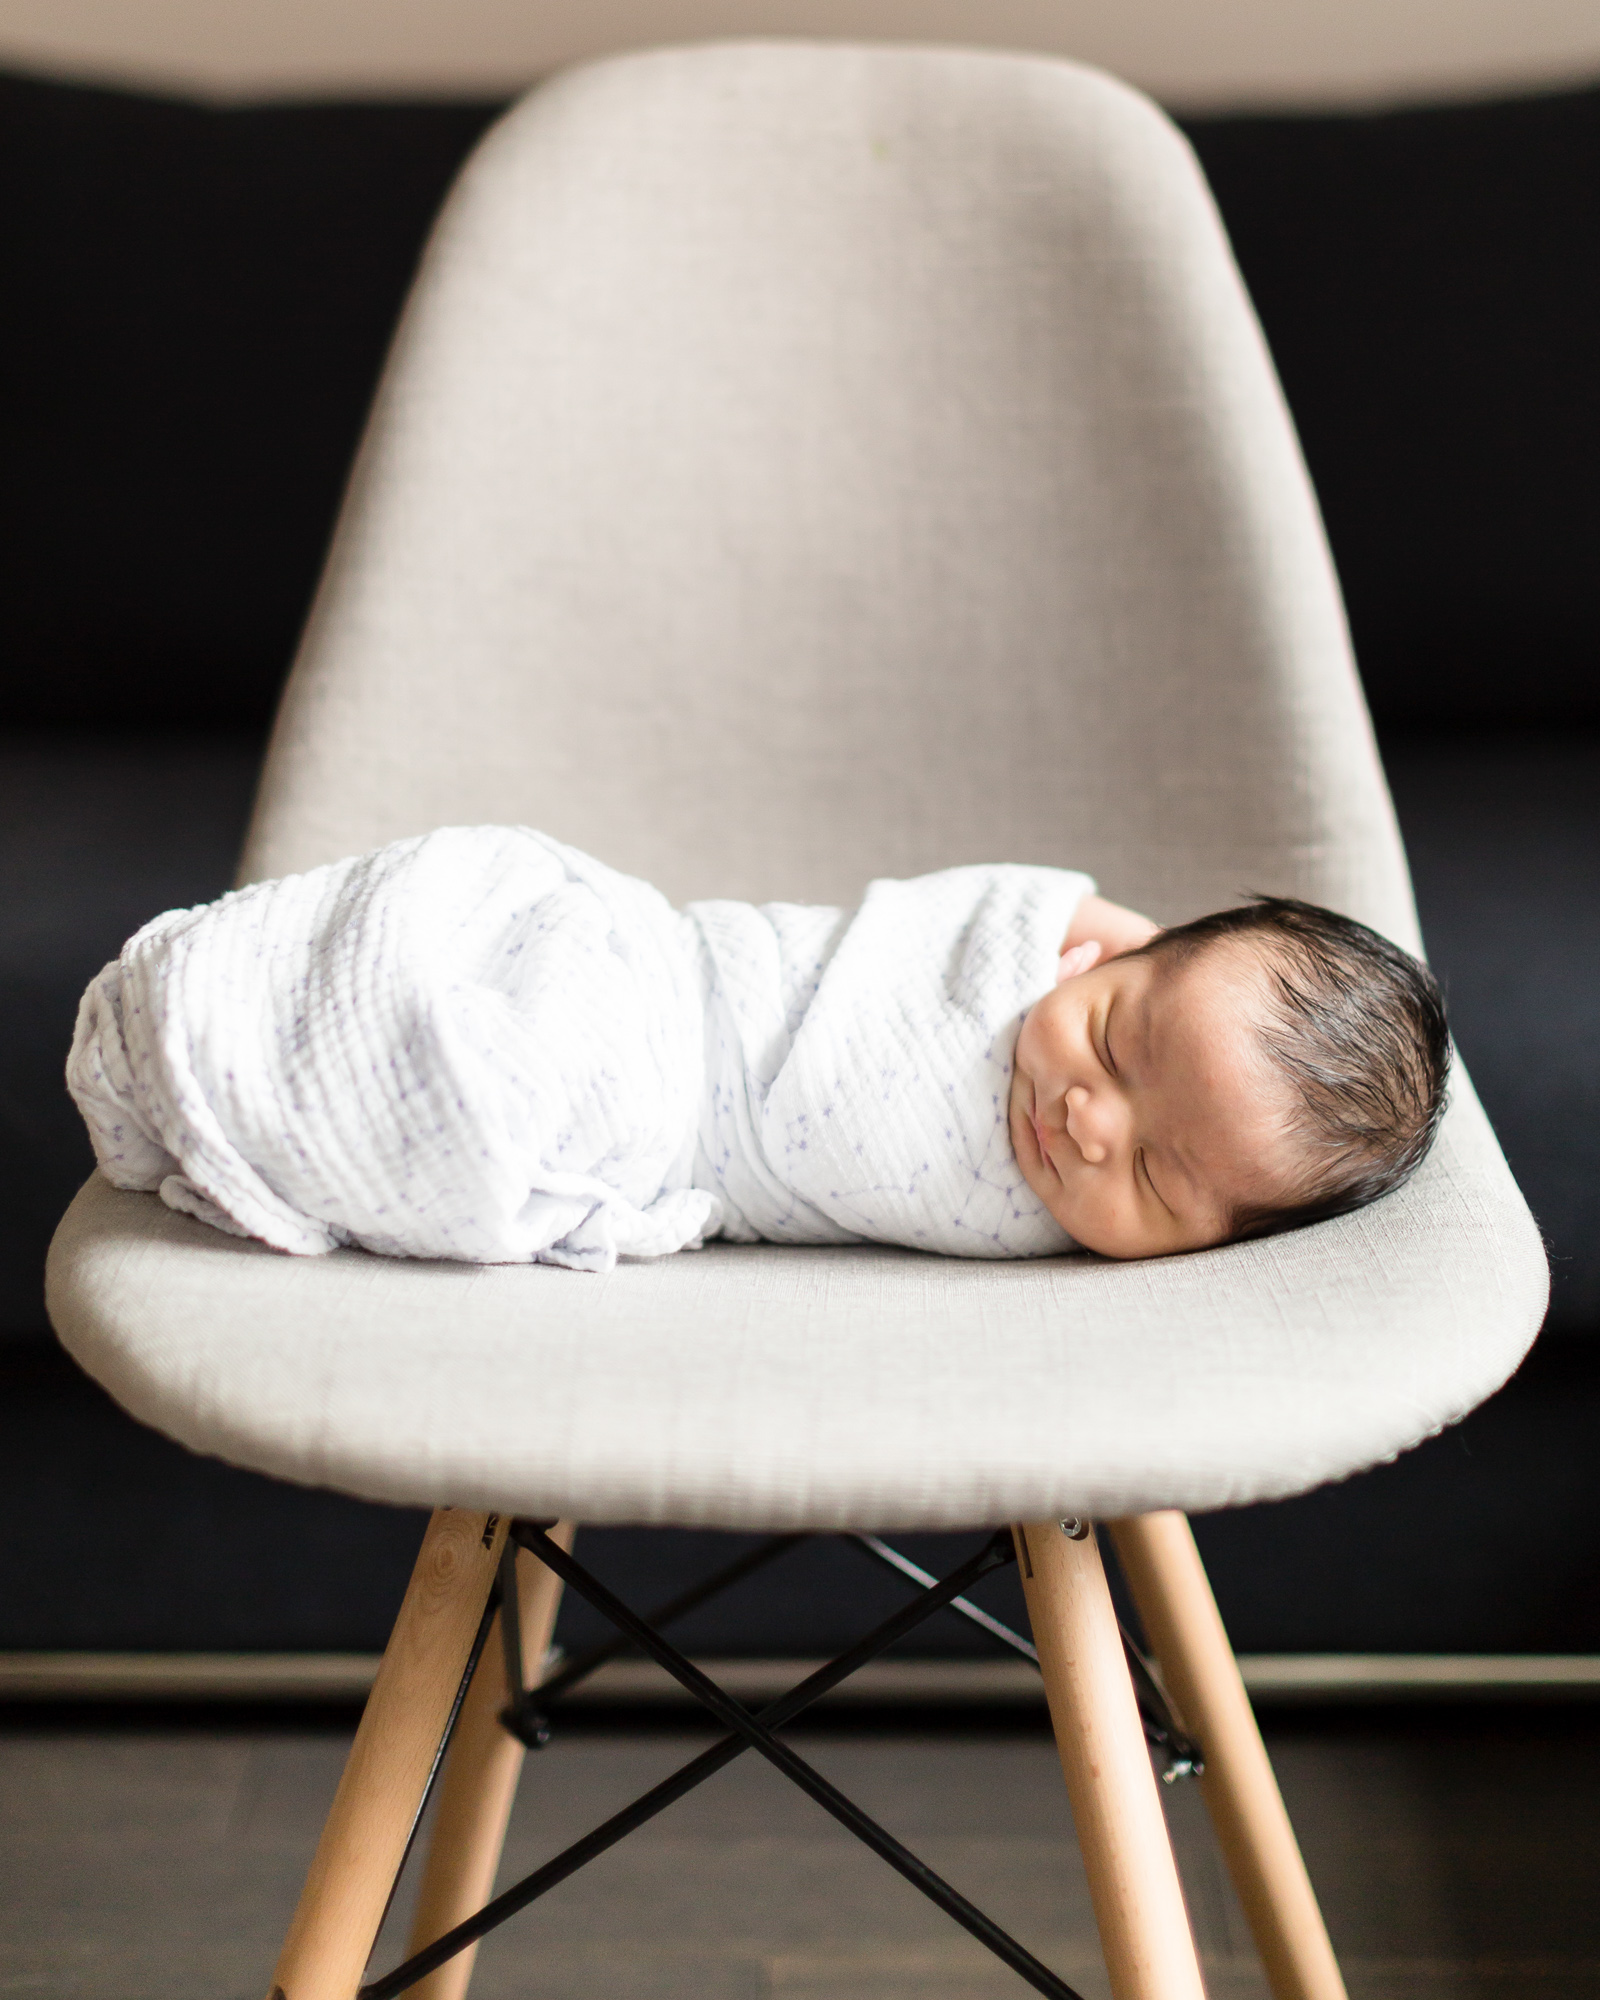 Newborn baby wrapped in a blanket on a chair.